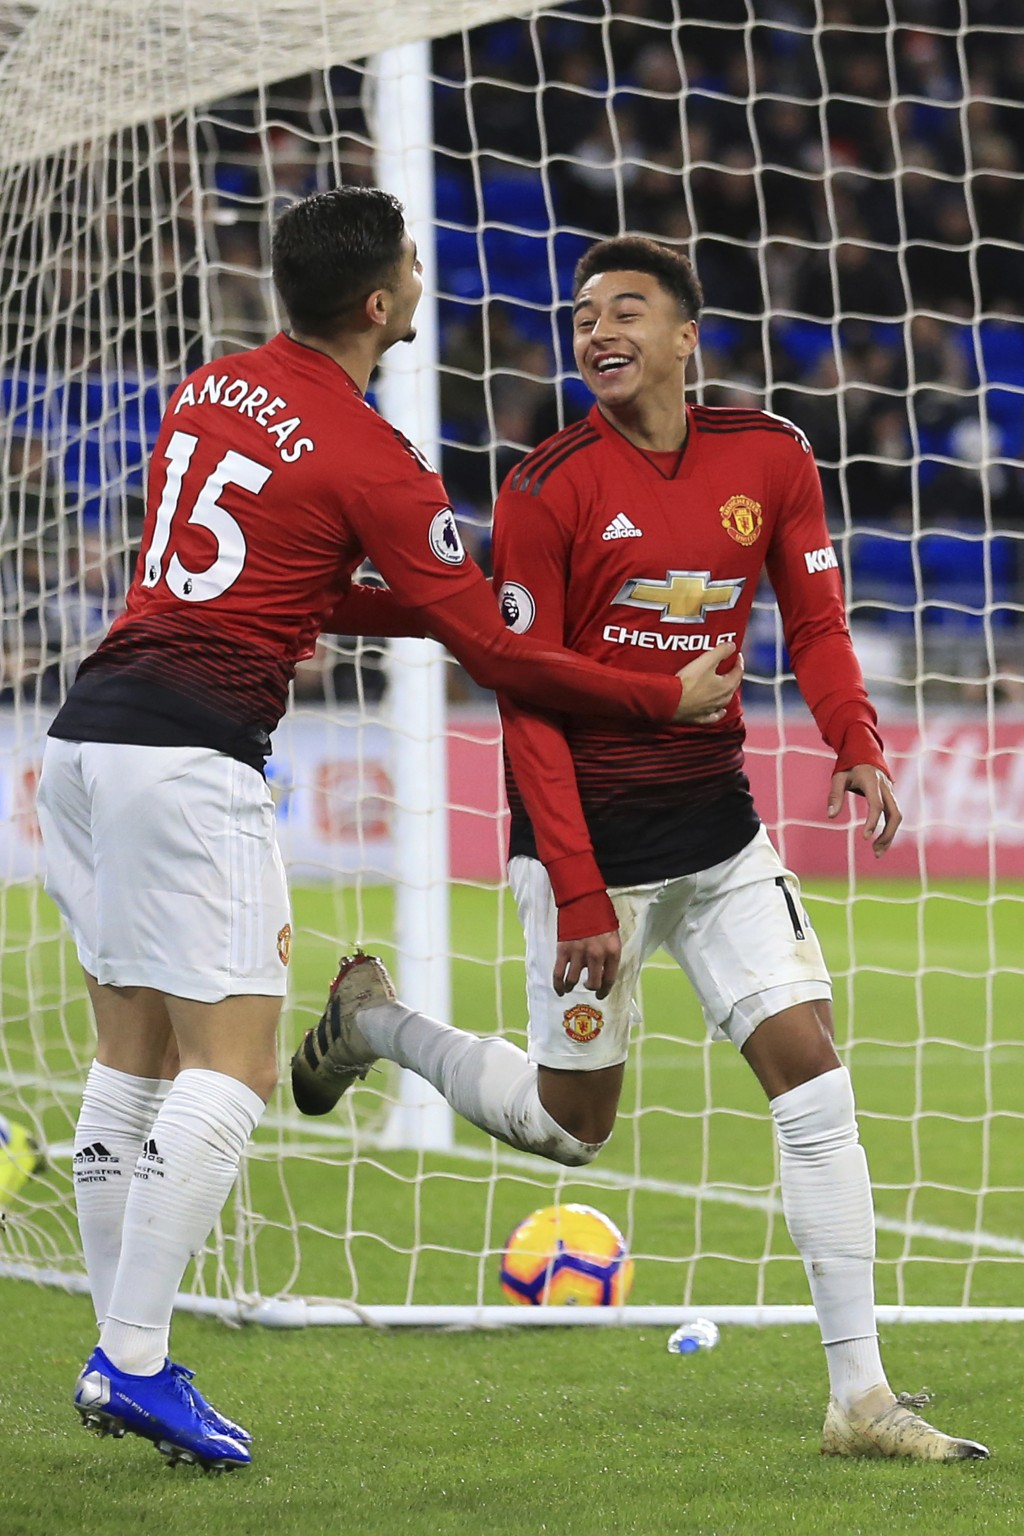 Manchester United midfielder Jesse Lingard, right, and his teammate midfielder Andreas Pereira celebrated together his goal against Cardiff City durin